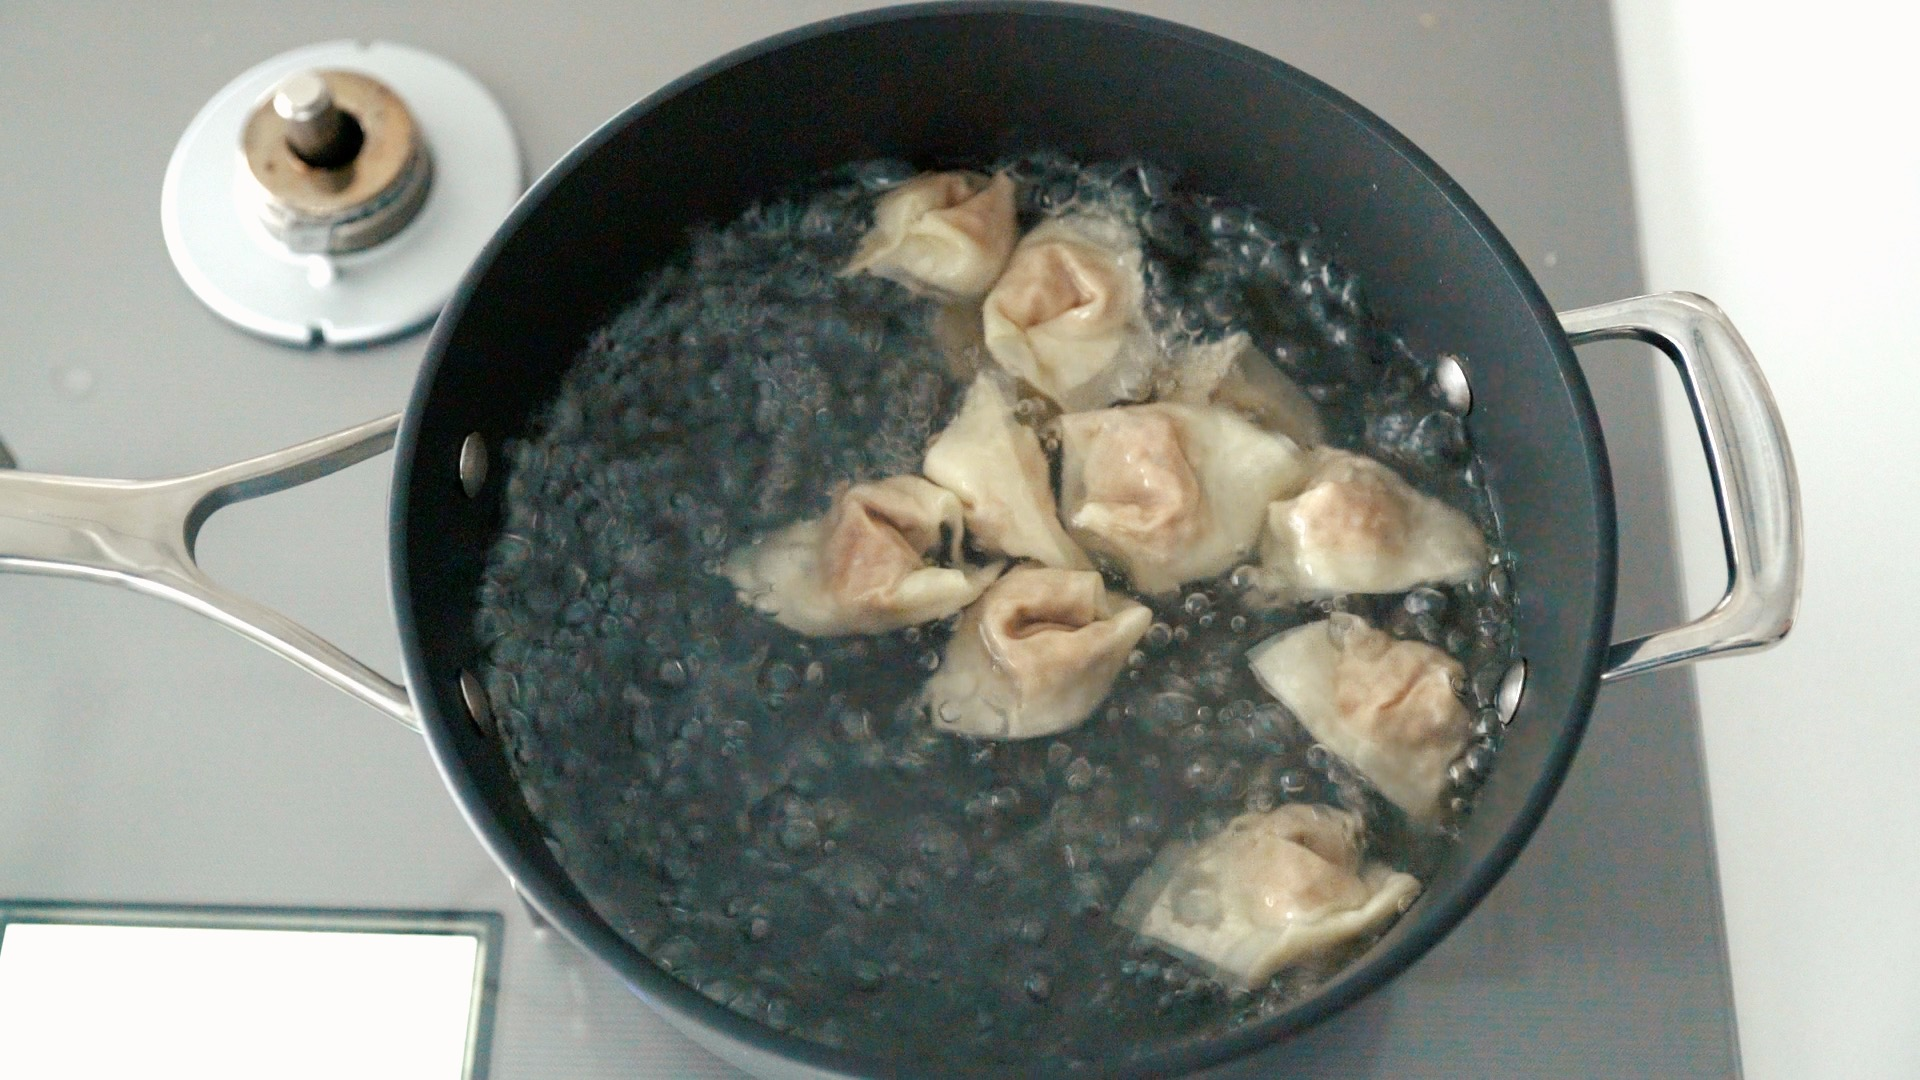 Boiling Chengdu-style wontons in chili oil.